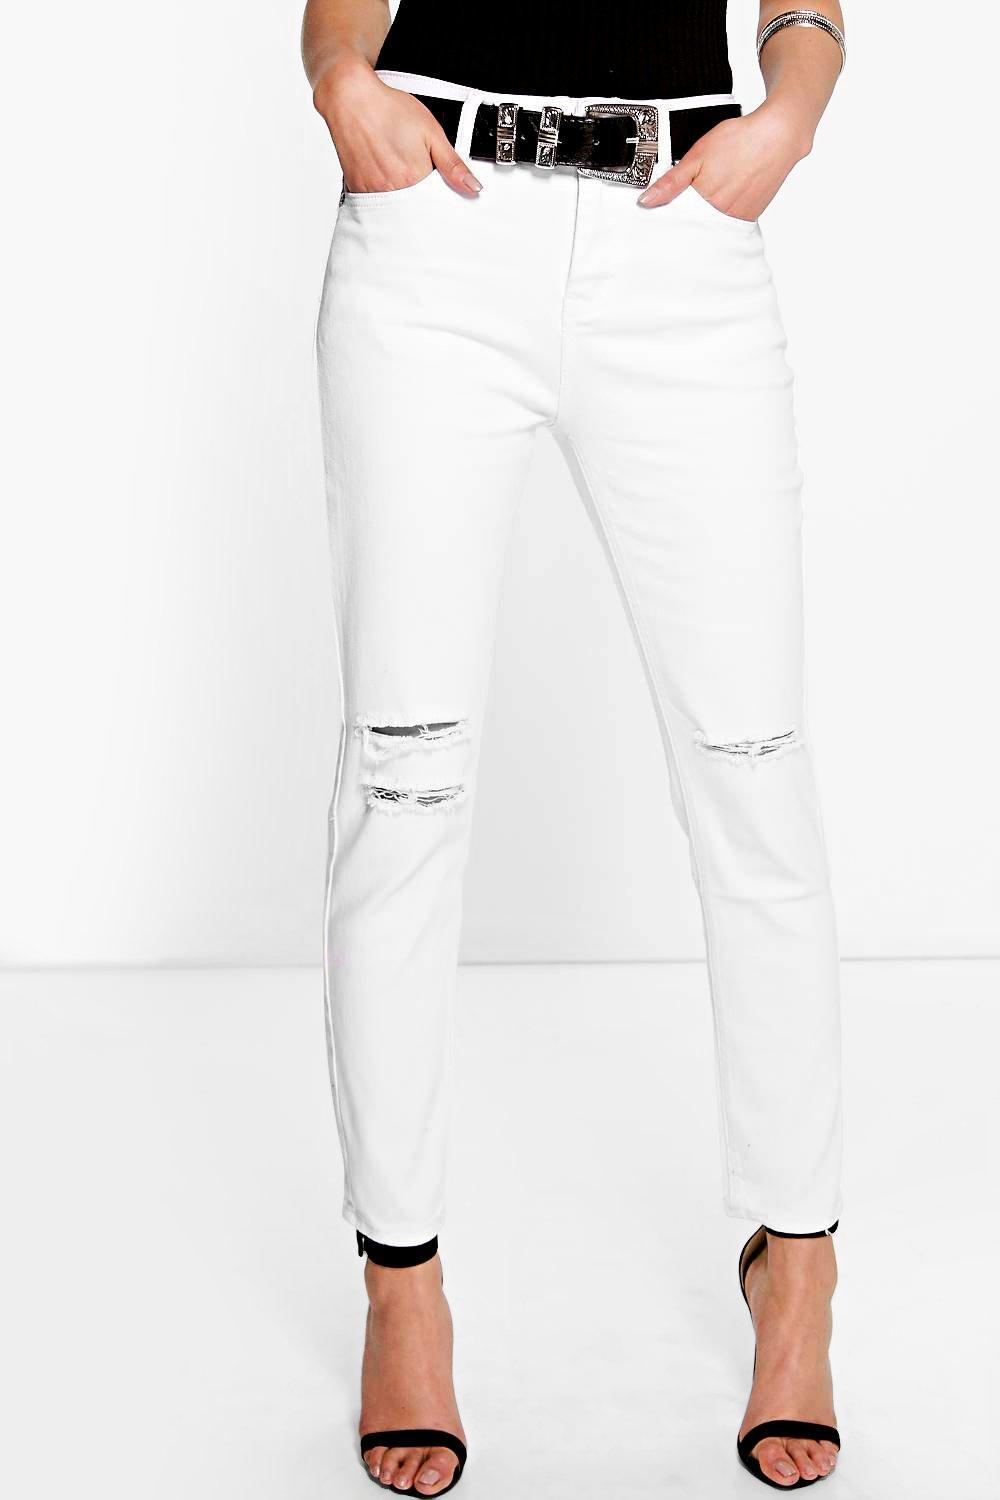 High Waisted Slit Knee Skinny Jeans White - style: skinny leg; length: standard; pattern: plain; pocket detail: traditional 5 pocket; waist: mid/regular rise; predominant colour: white; occasions: casual; fibres: cotton - stretch; texture group: denim; pattern type: fabric; jeans detail: rips; season: s/s 2016